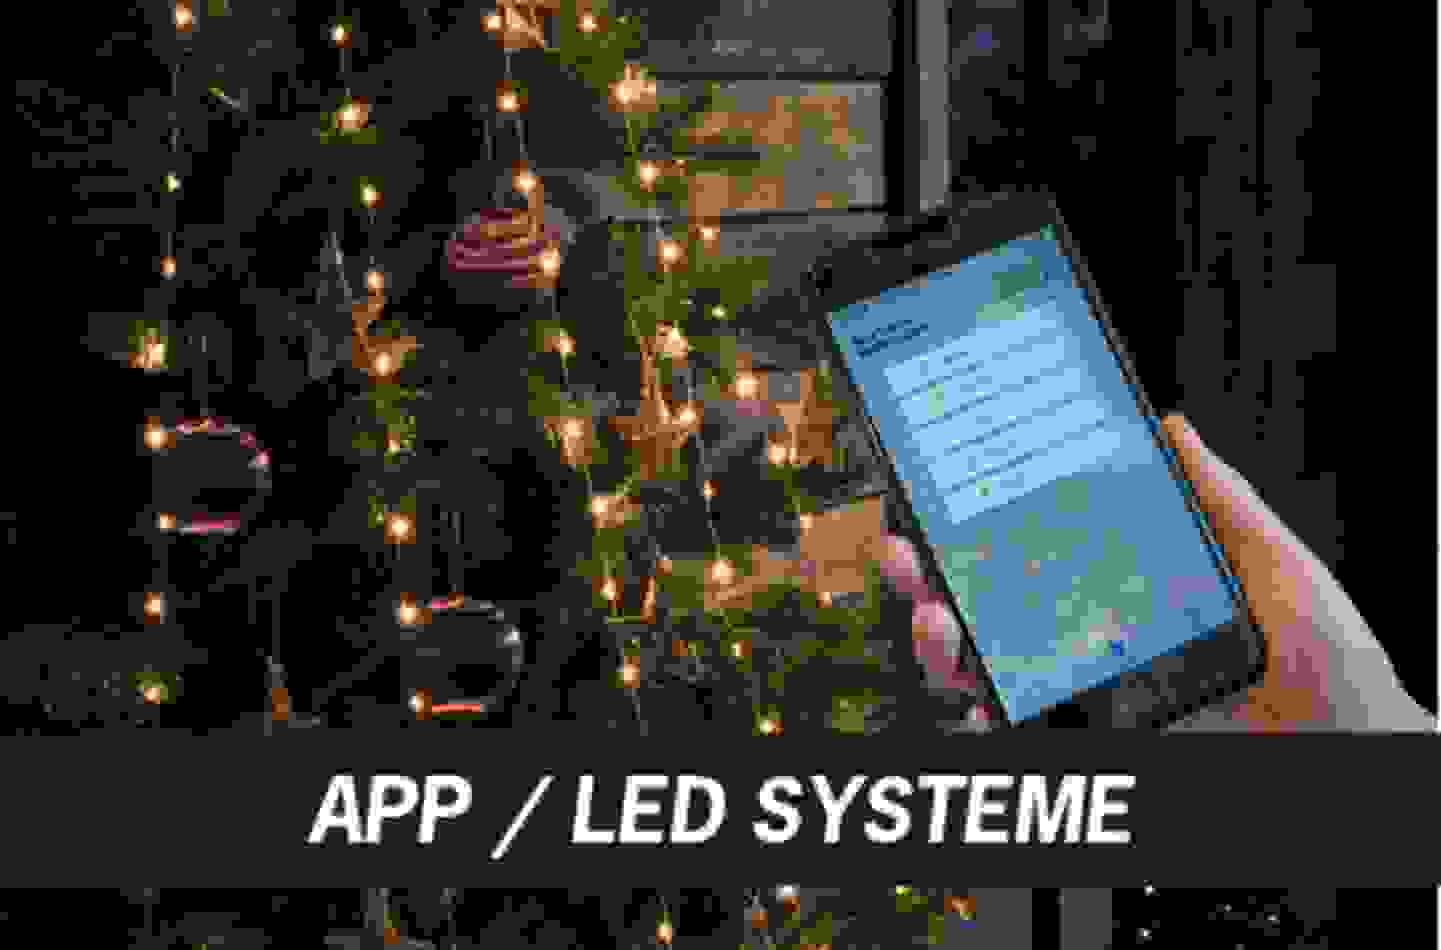 App / LED Systeme